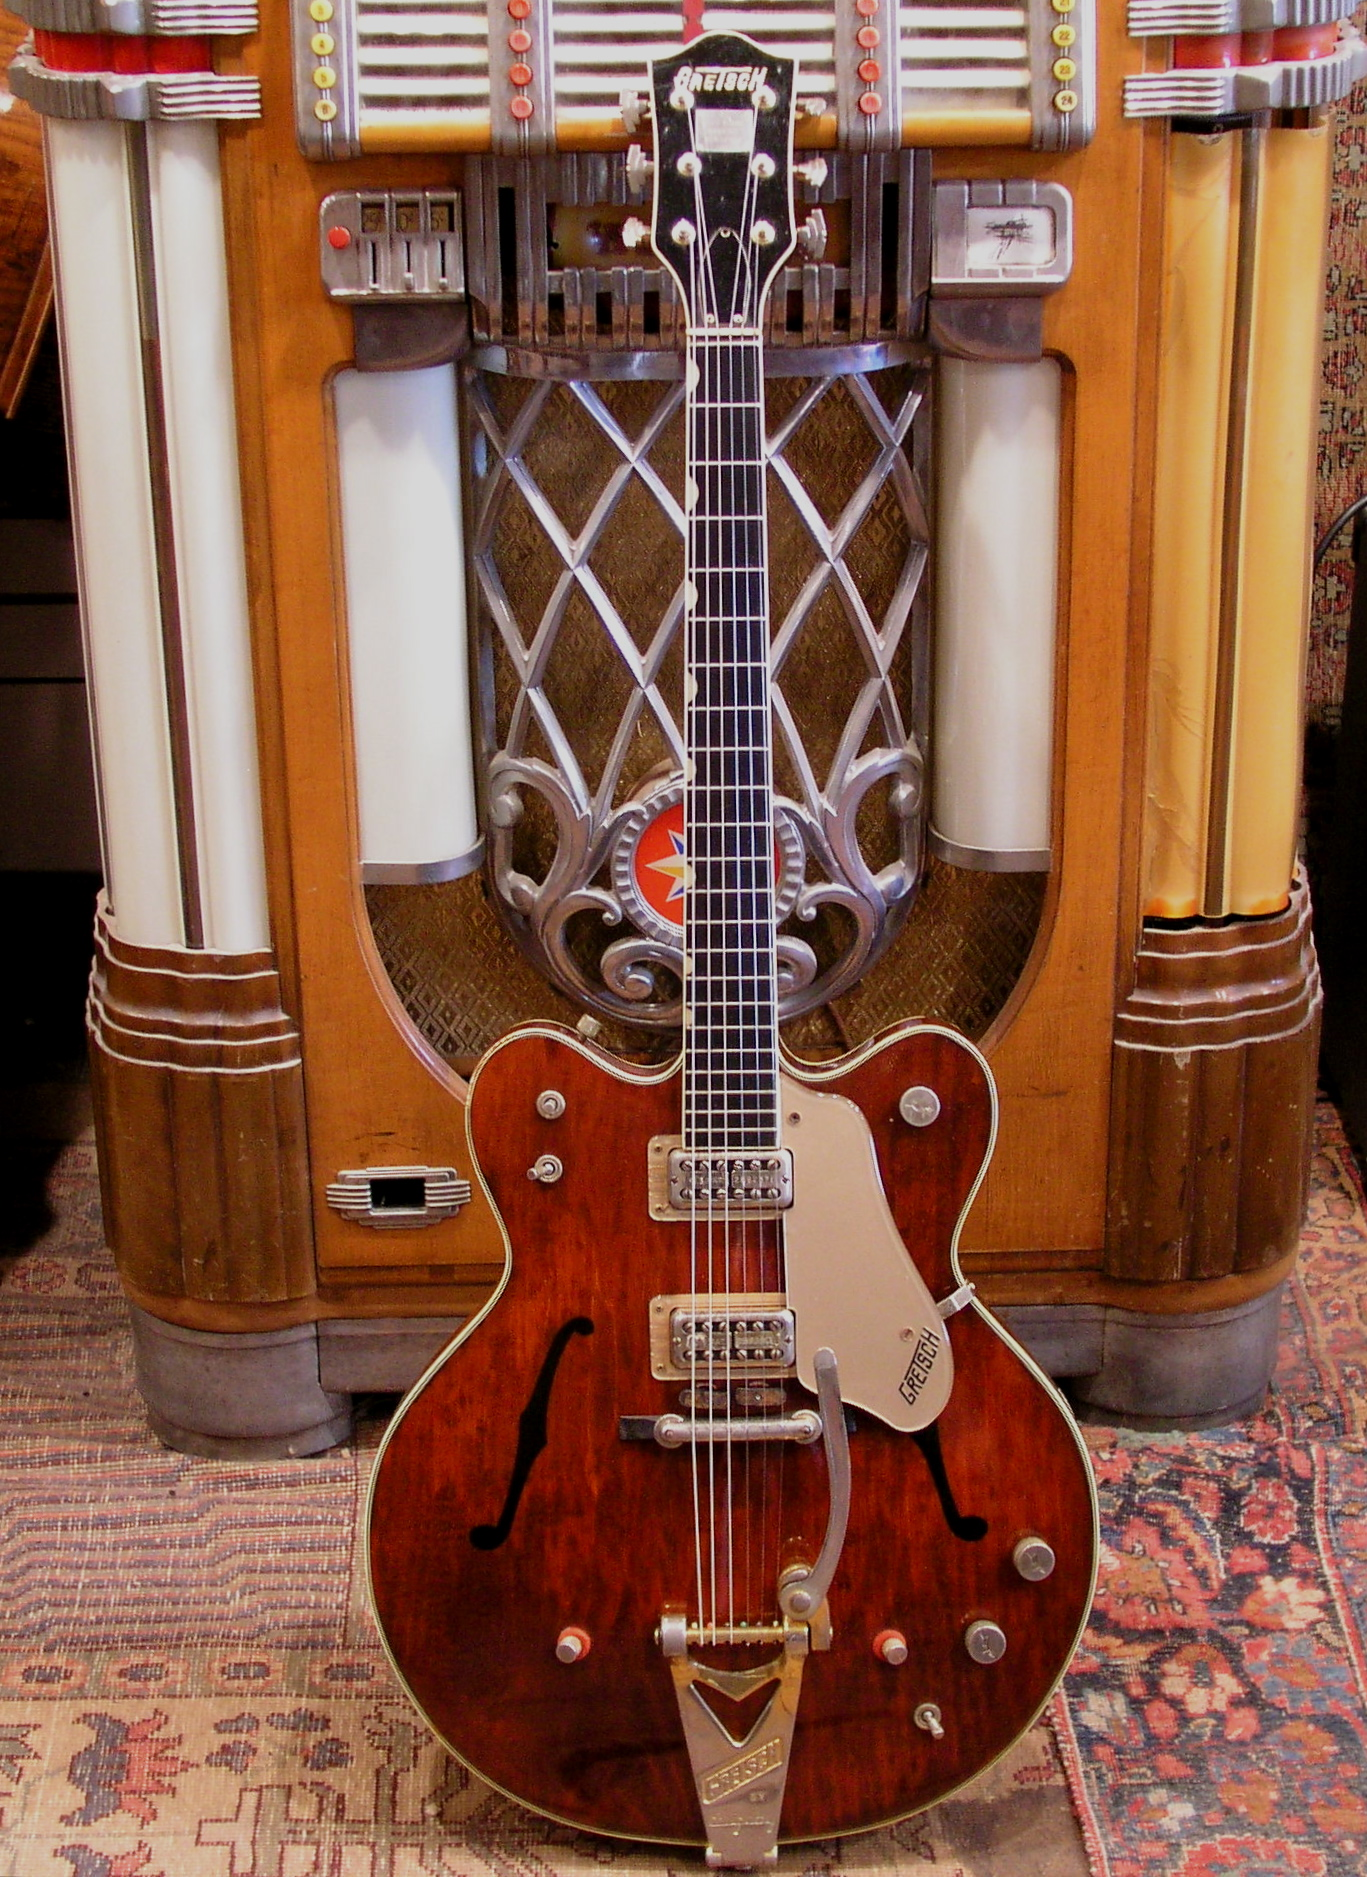 No Credit Check Credit Cards >> 1963 Gretsch Country Gentleman > Guitars Archtop Electric & Acoustic | Guitar Exchange